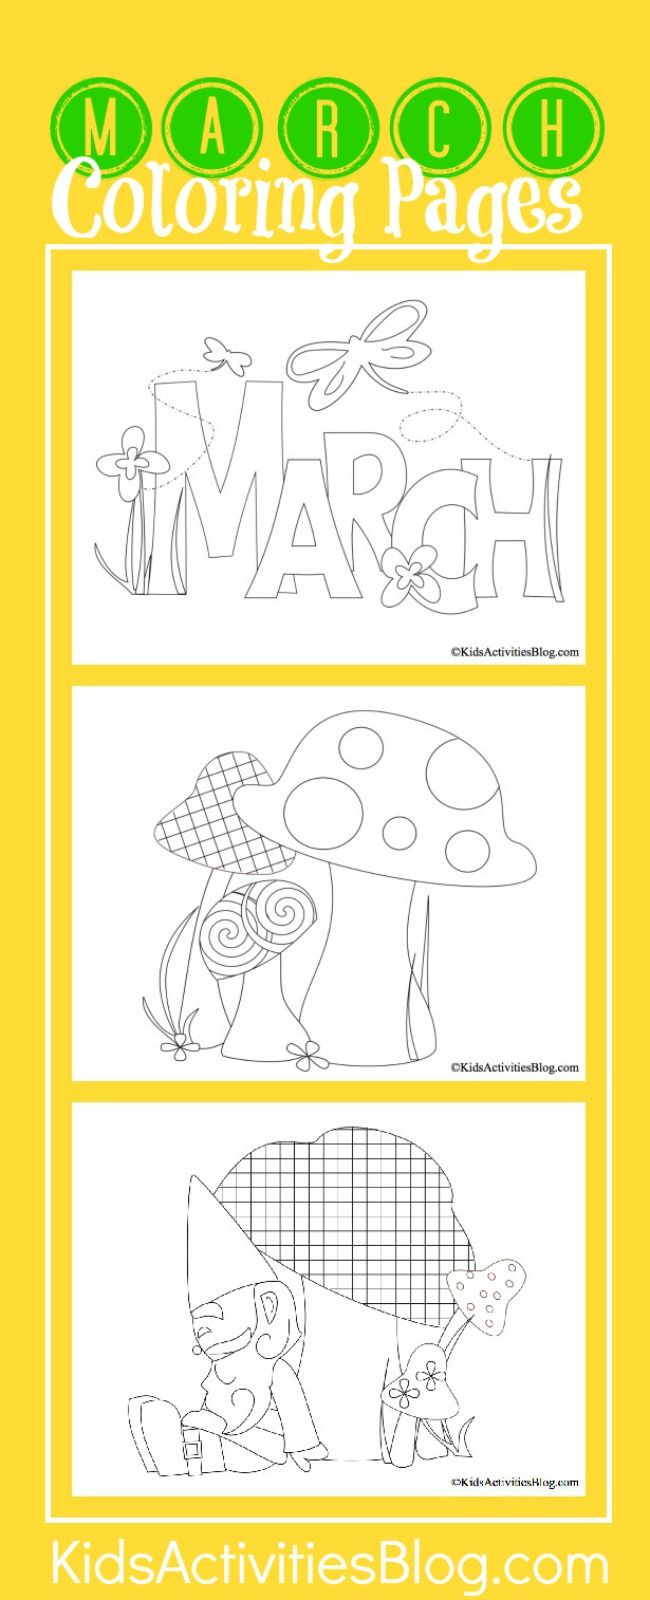 122 best kids coloring pages images on pinterest drawings